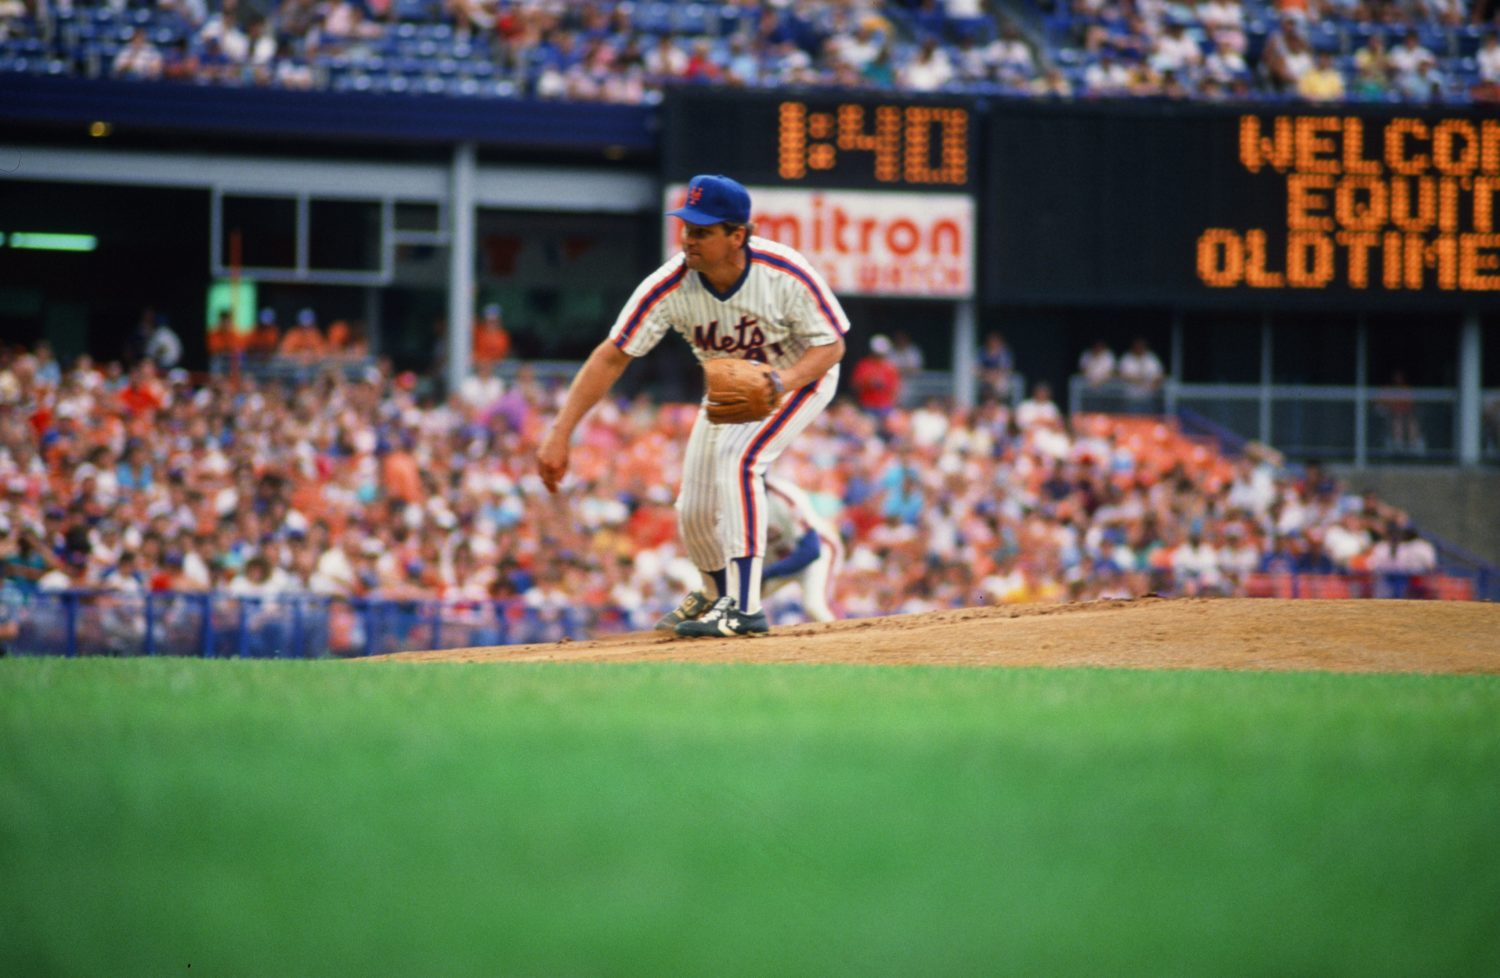 Tom Seaver Throws Pitch at Old-Timers Day